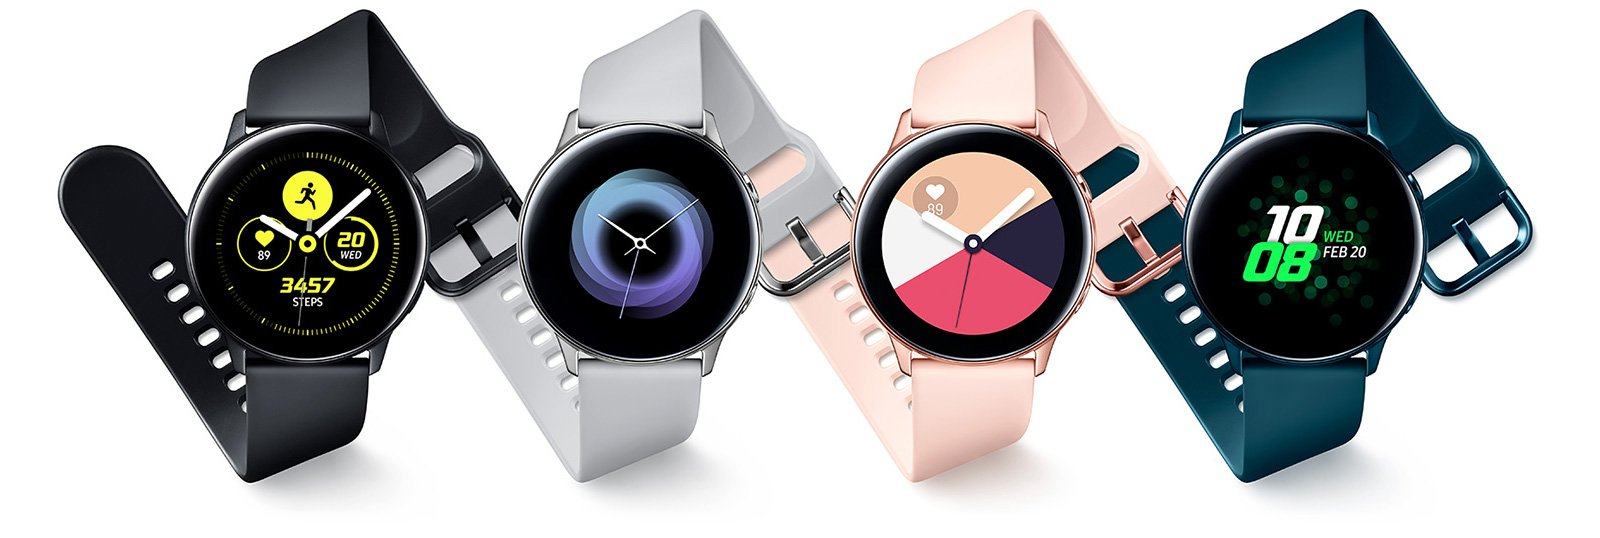 galaxy watch active black, silver, rose-gold, green